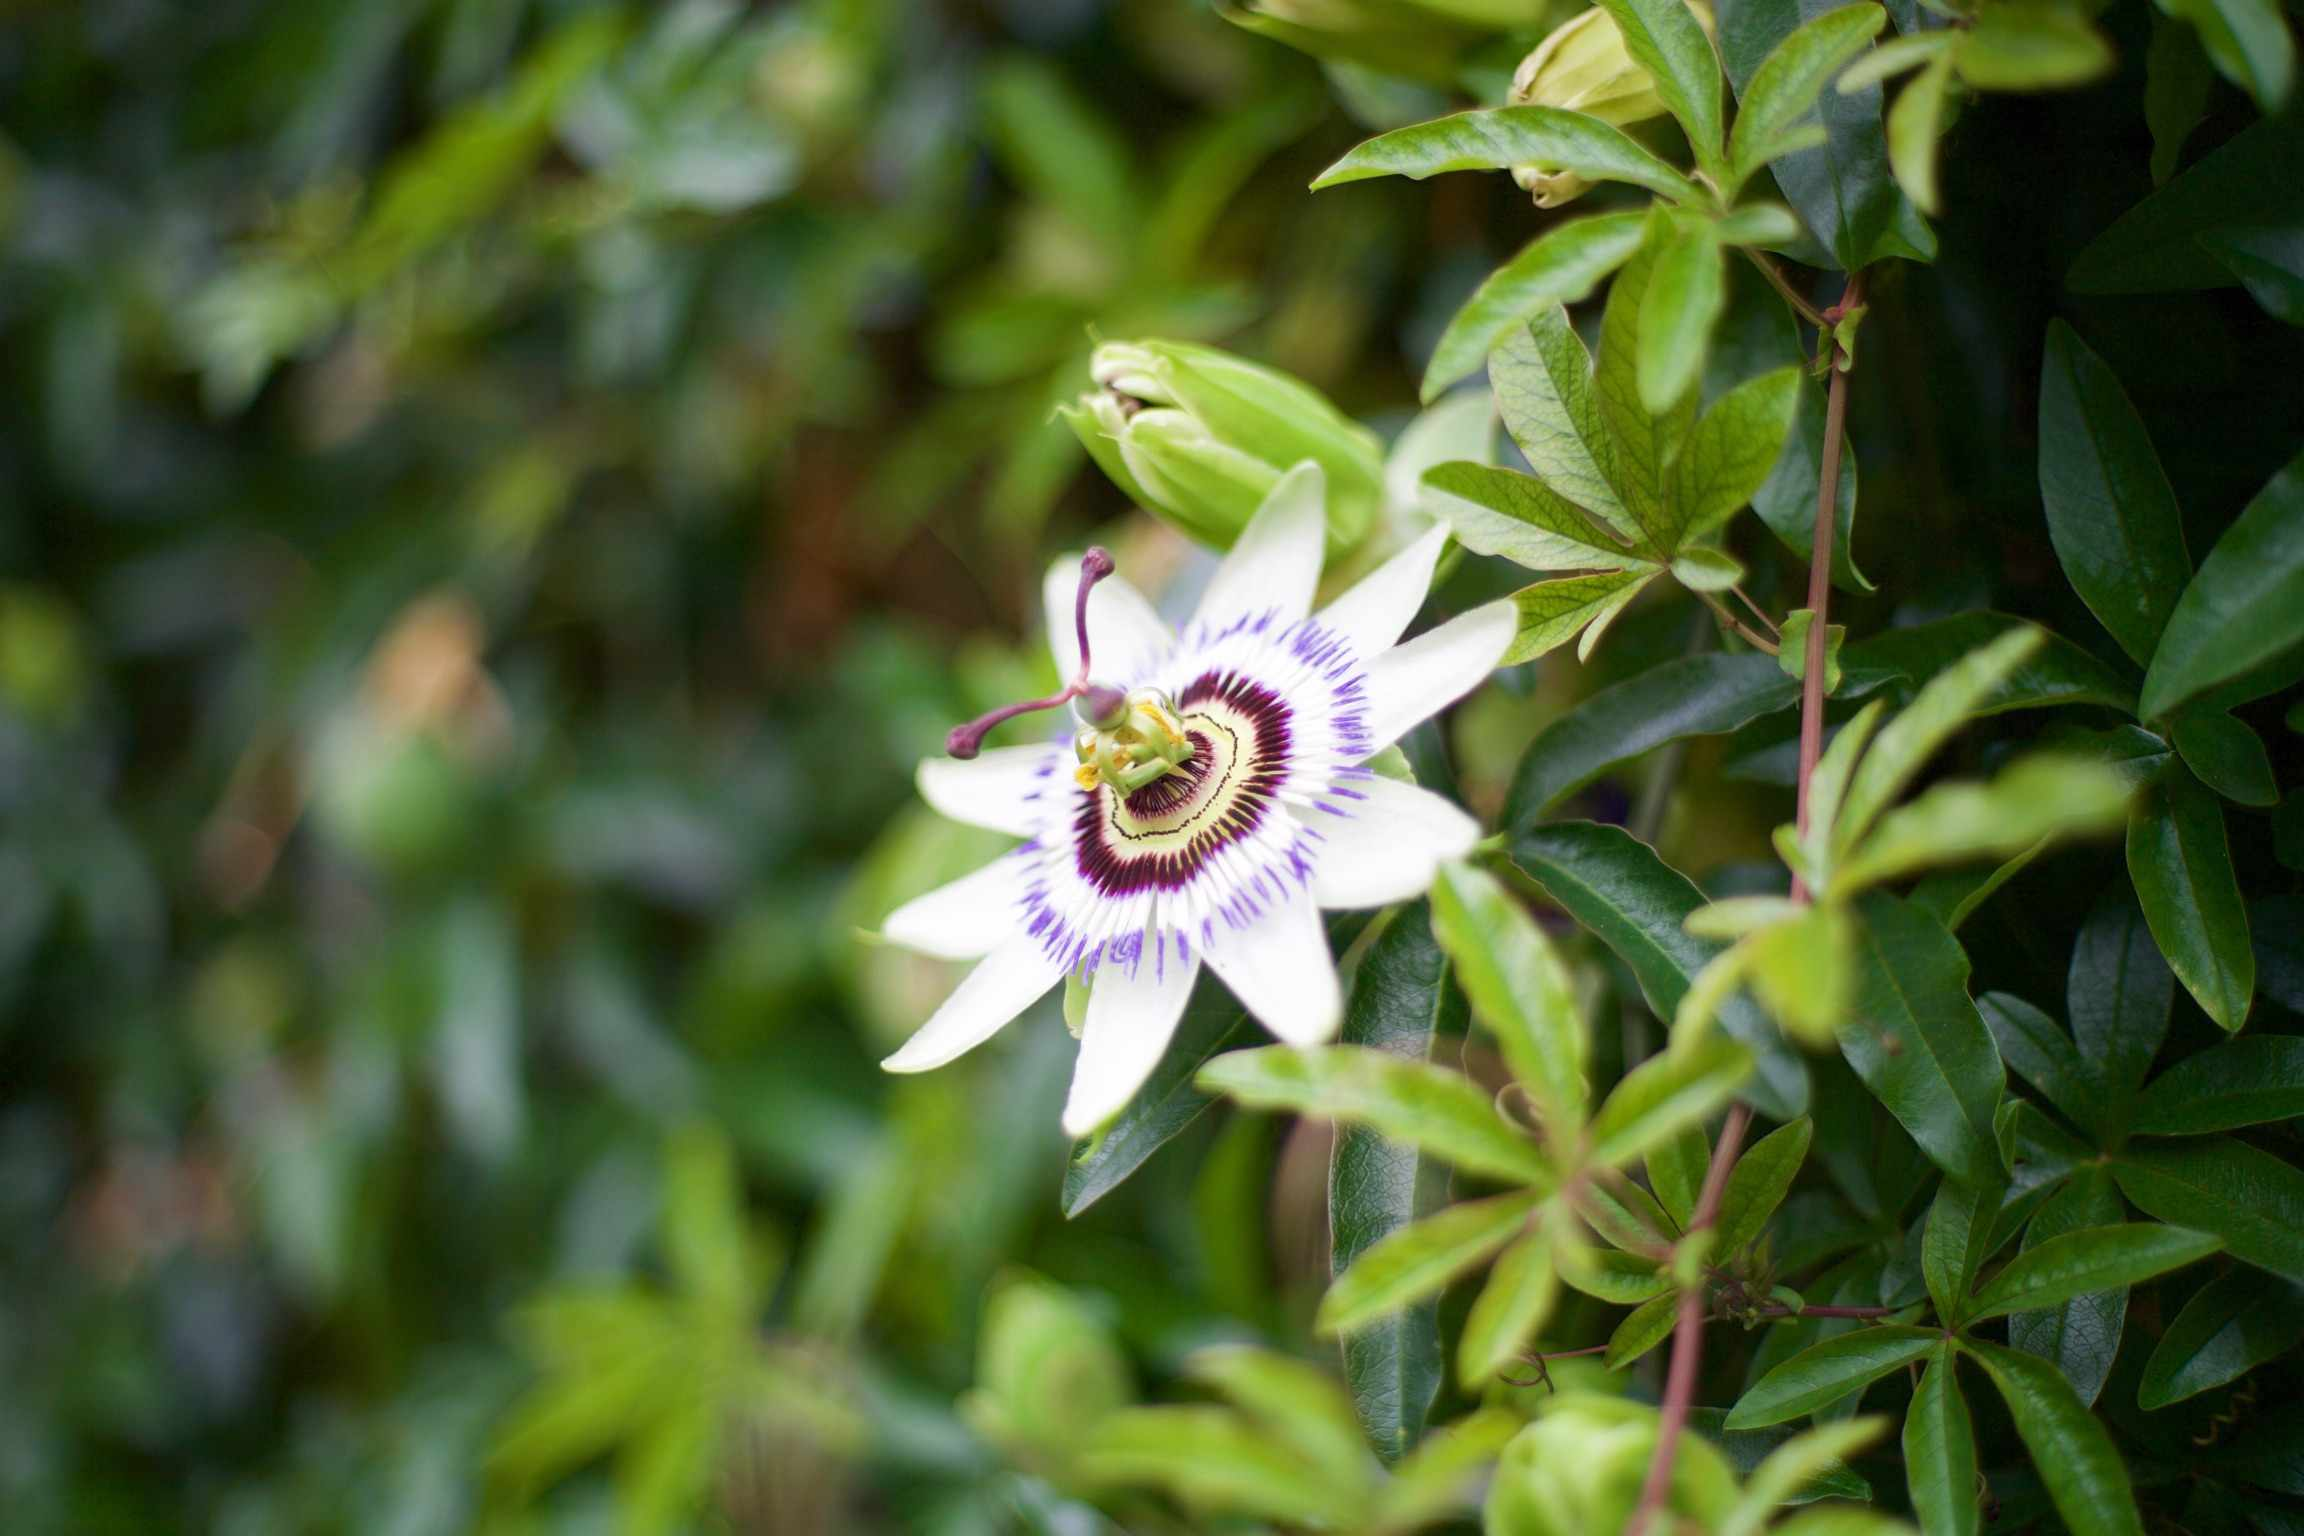 Close-Up Of Passion Flower Growing On Plant